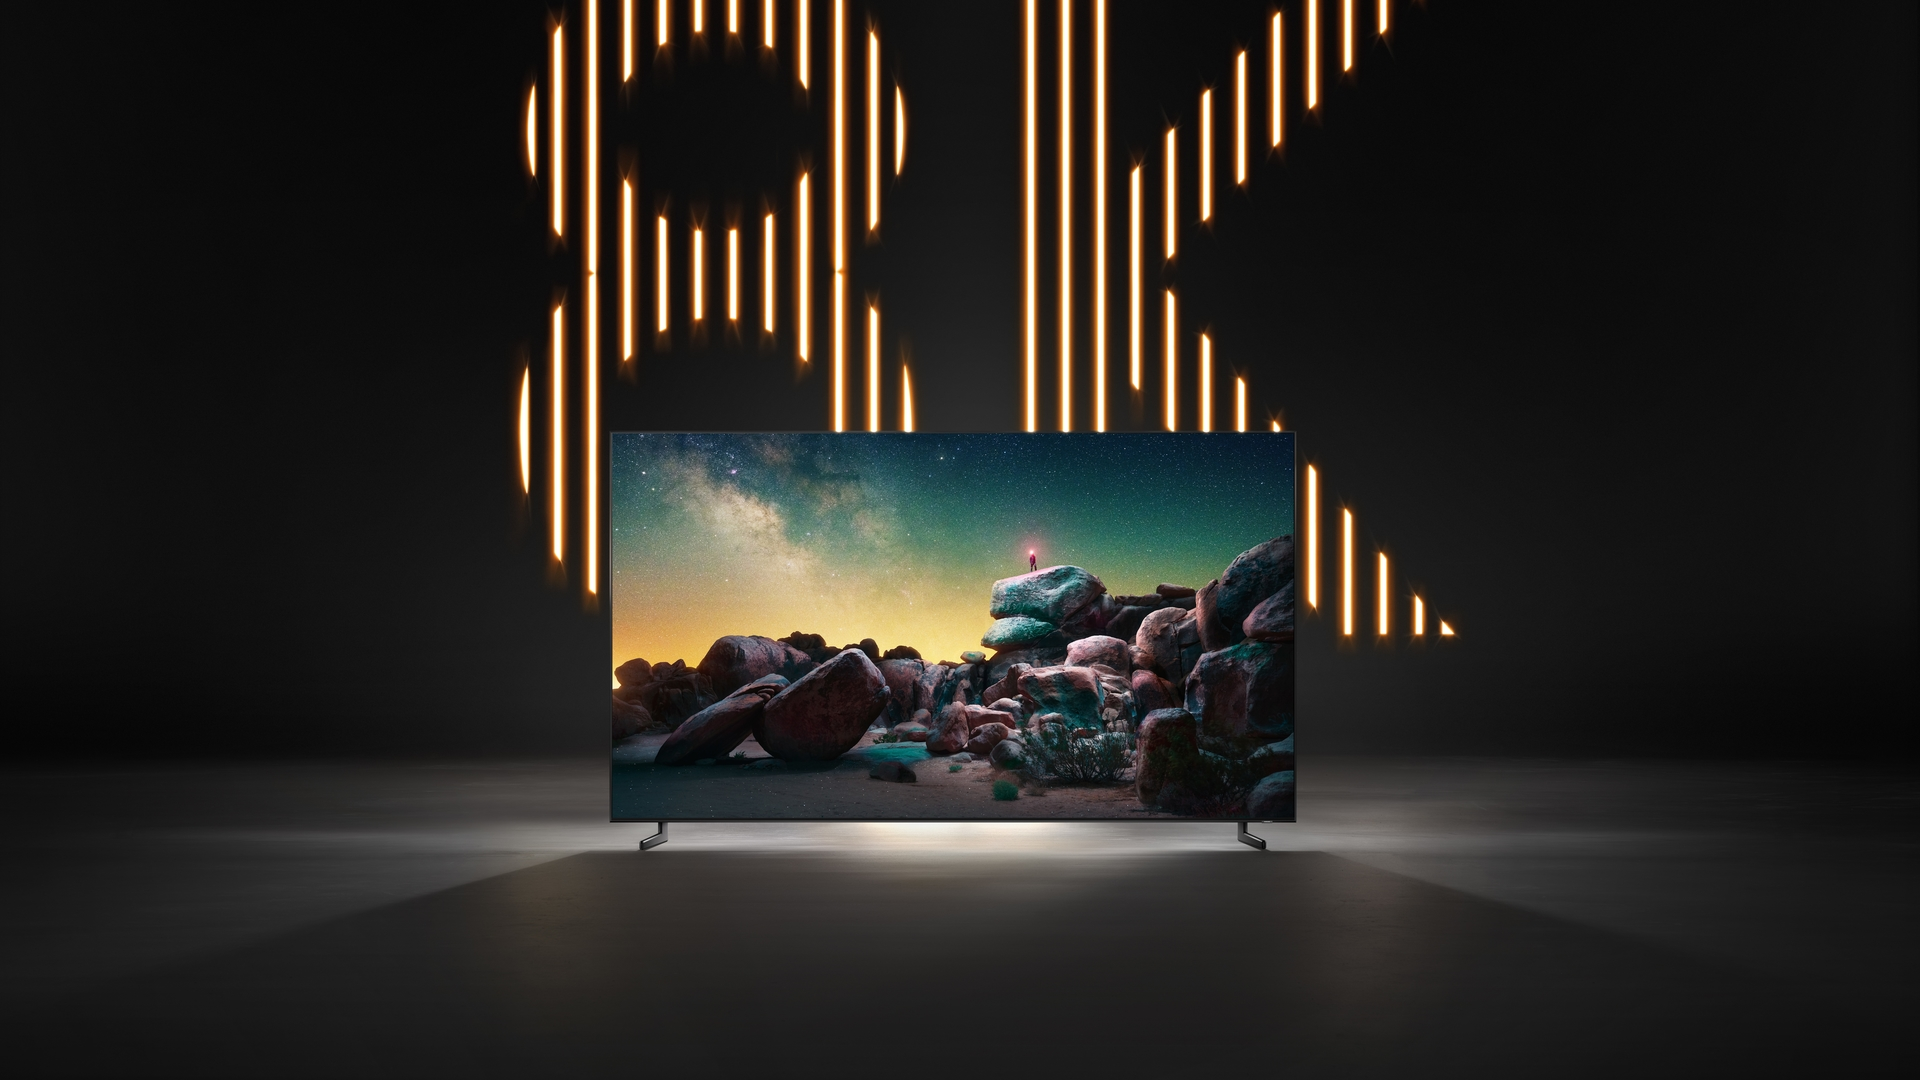 Samsung tv 8k destaque